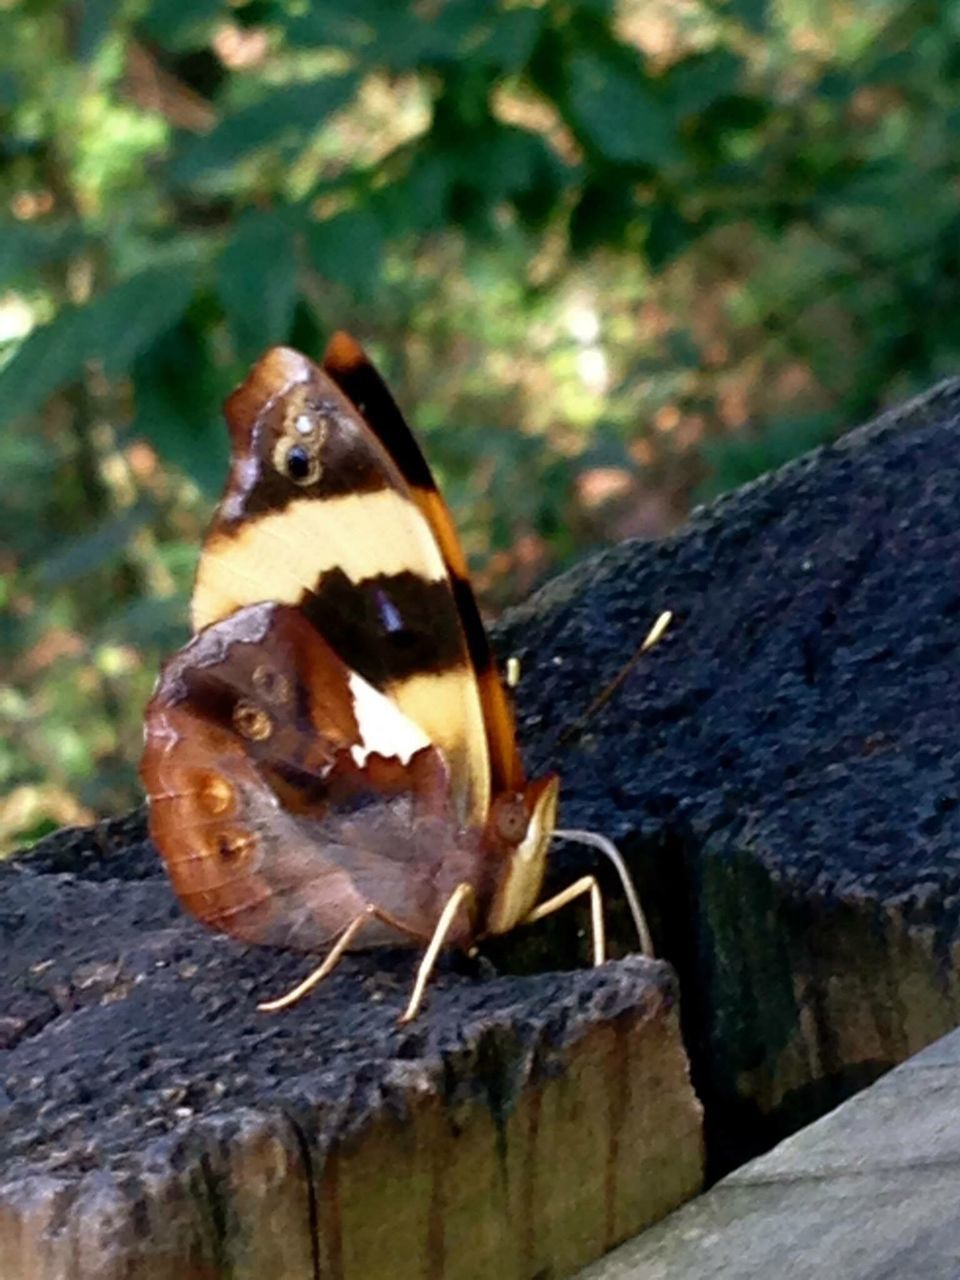 animal themes, animals in the wild, one animal, insect, wildlife, animal wildlife, outdoors, close-up, day, no people, nature, butterfly - insect, perching, beauty in nature, fragility